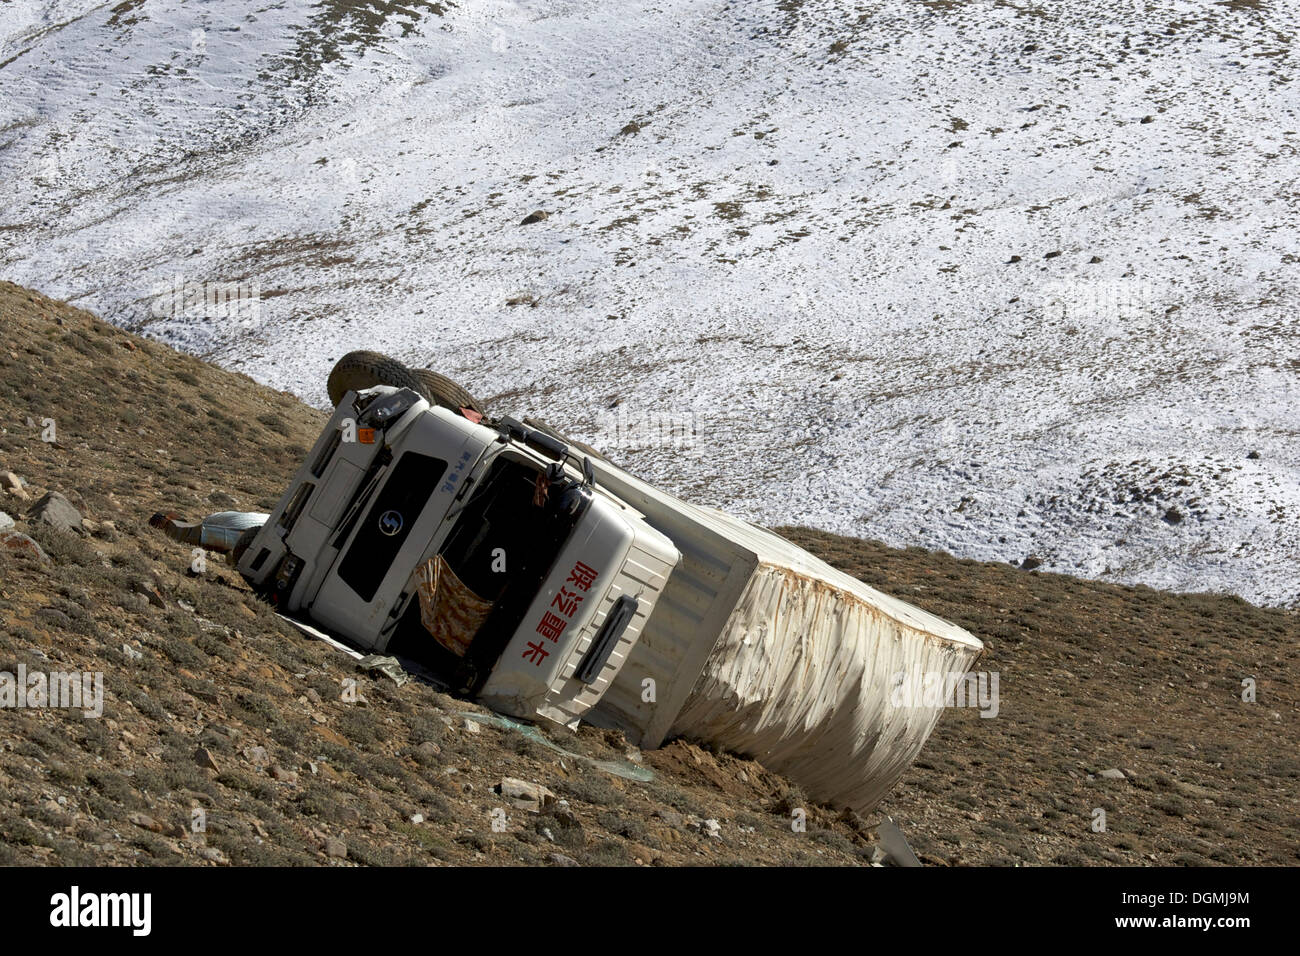 Overturned Chinese truck that crashed off the Pamir Highway on Koitezek Pass, Pamir, Tajikistan, Central Asia, Asia - Stock Image